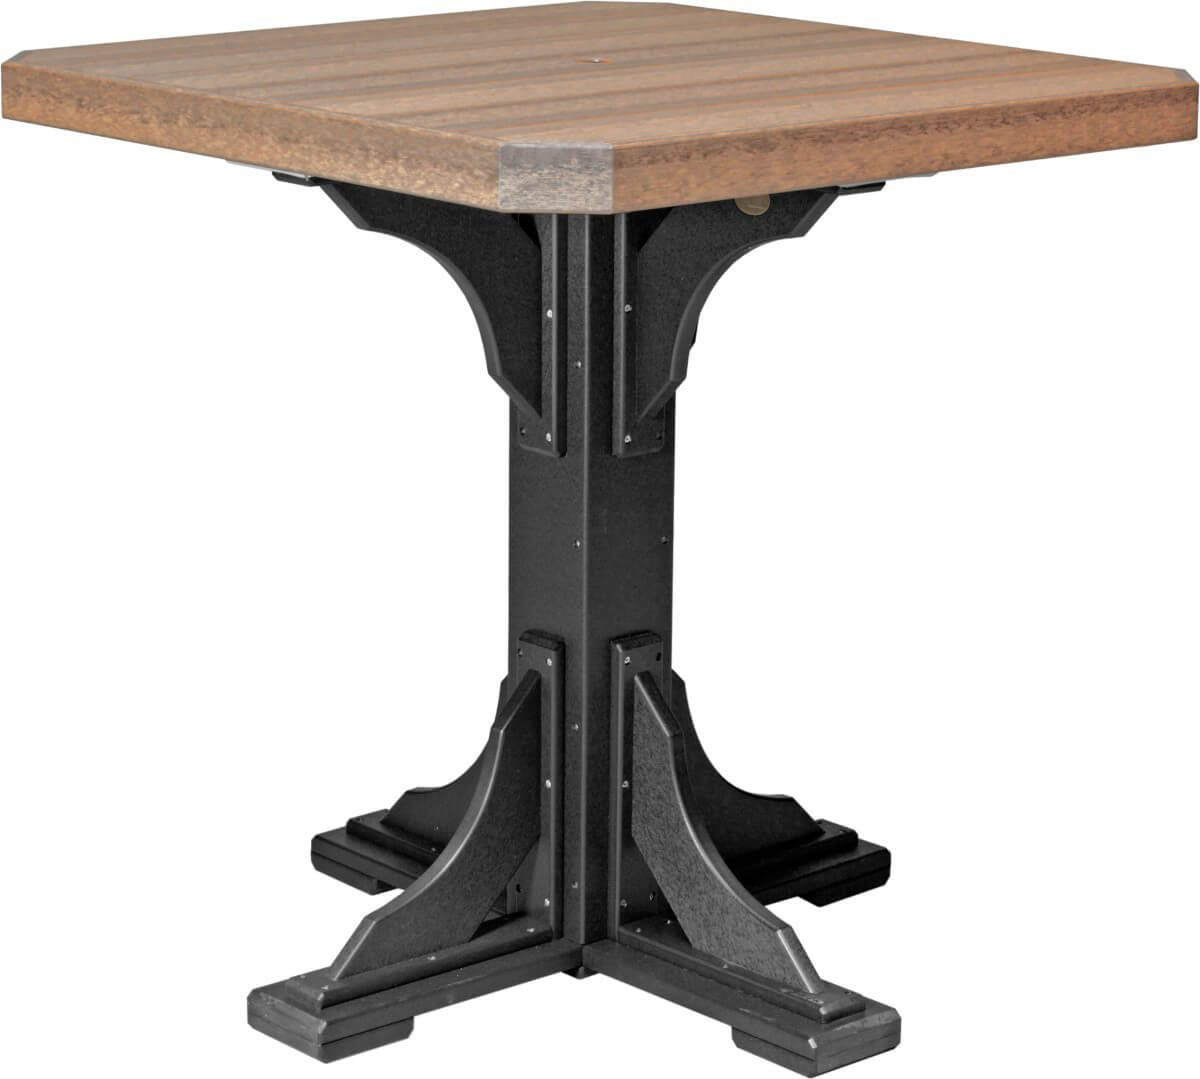 Pictured in Antique Mahogany and Black